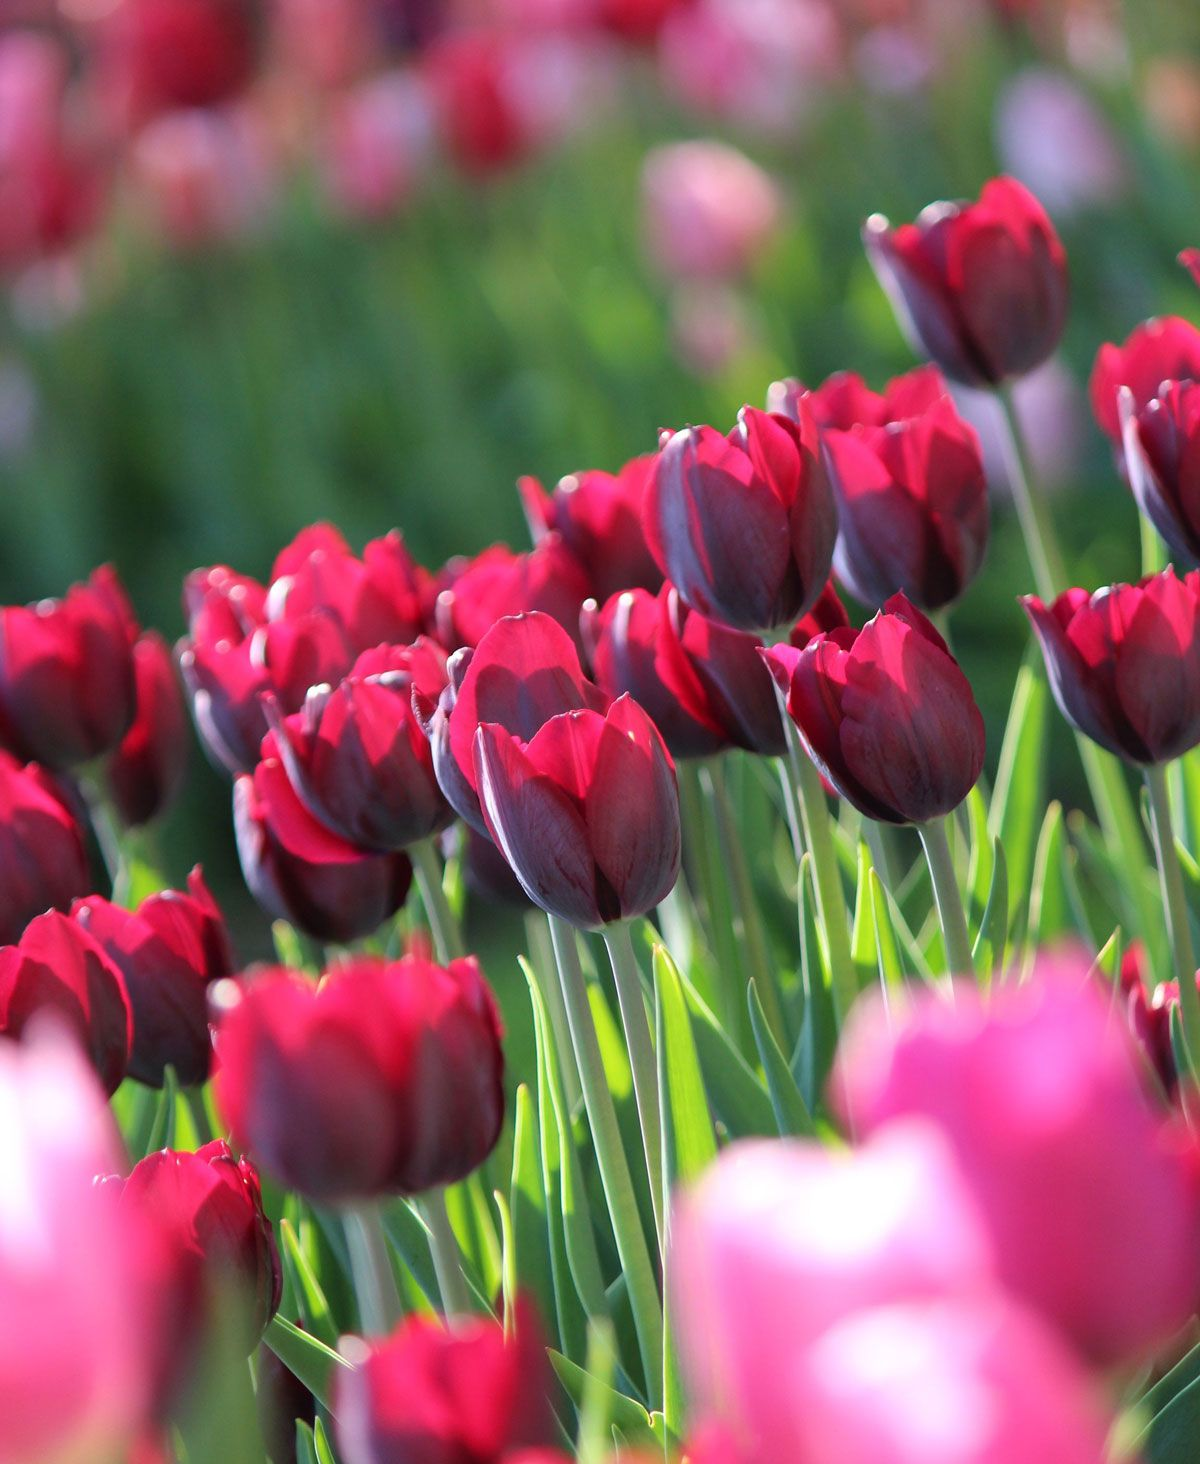 How To Care For Spring Flower Bulbs After They Bloom Bulb Flowers Spring Flowering Bulbs Spring Bulbs Garden